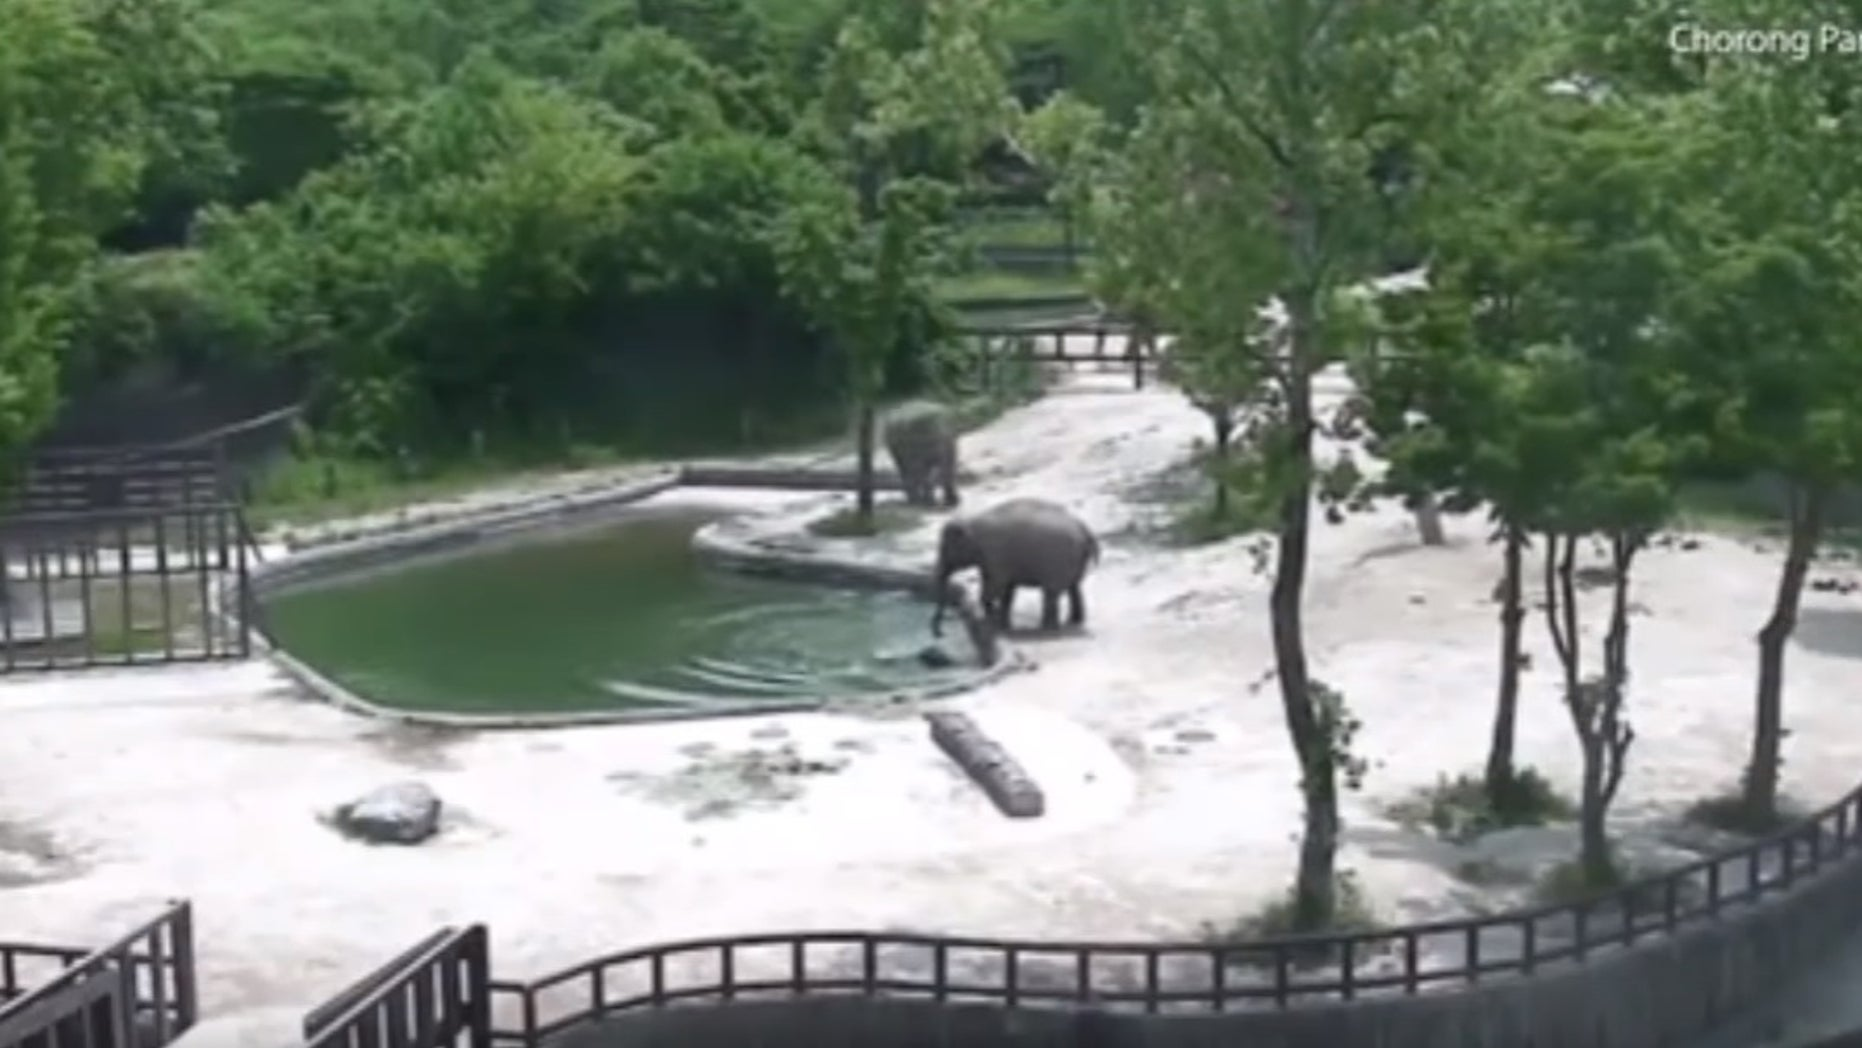 The adult elephants worked together to rescue the drowning baby.